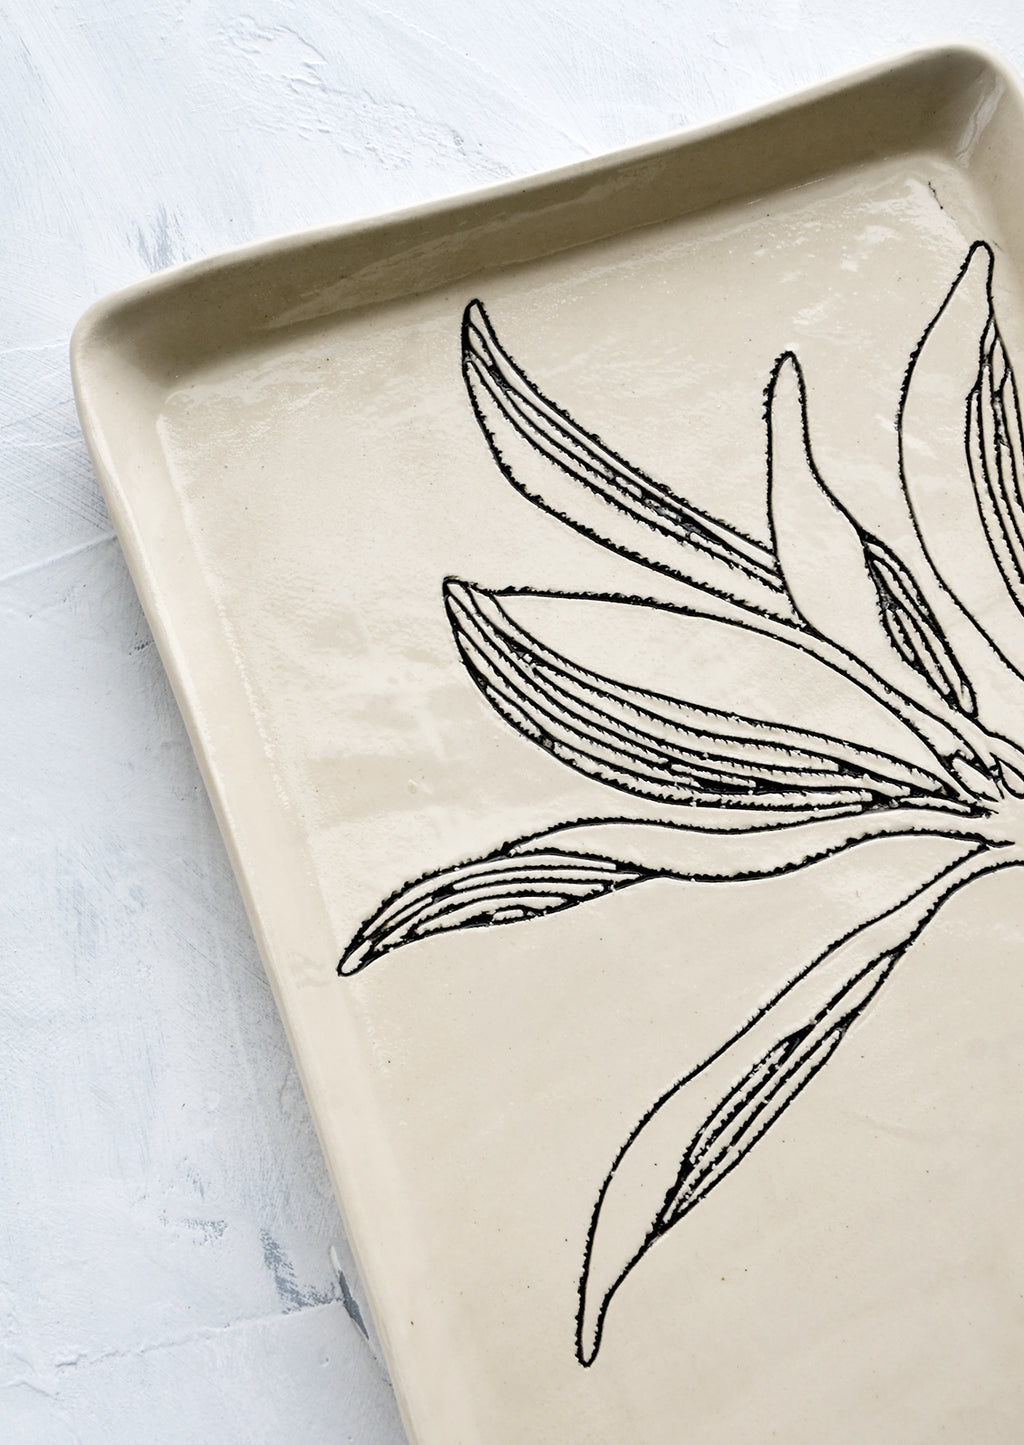 5: Black etched botanical detailing on a ceramic tray.